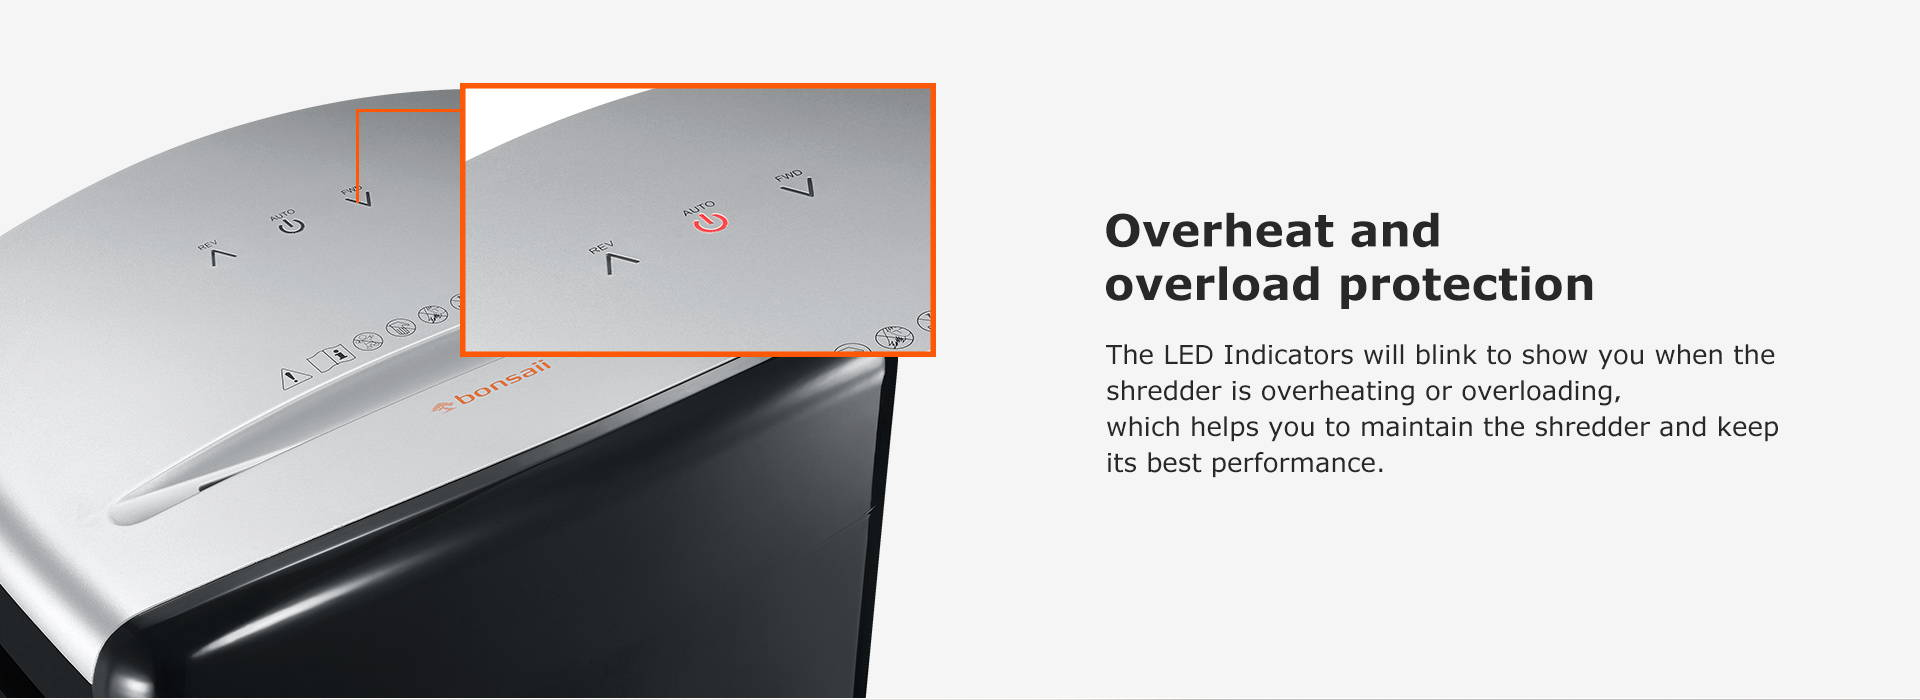 Overheat and overload protection  The LED Indicators will blink to show you when the shredder is overheating or overloading,which helps you to maintain the shredder and keep its best performance.